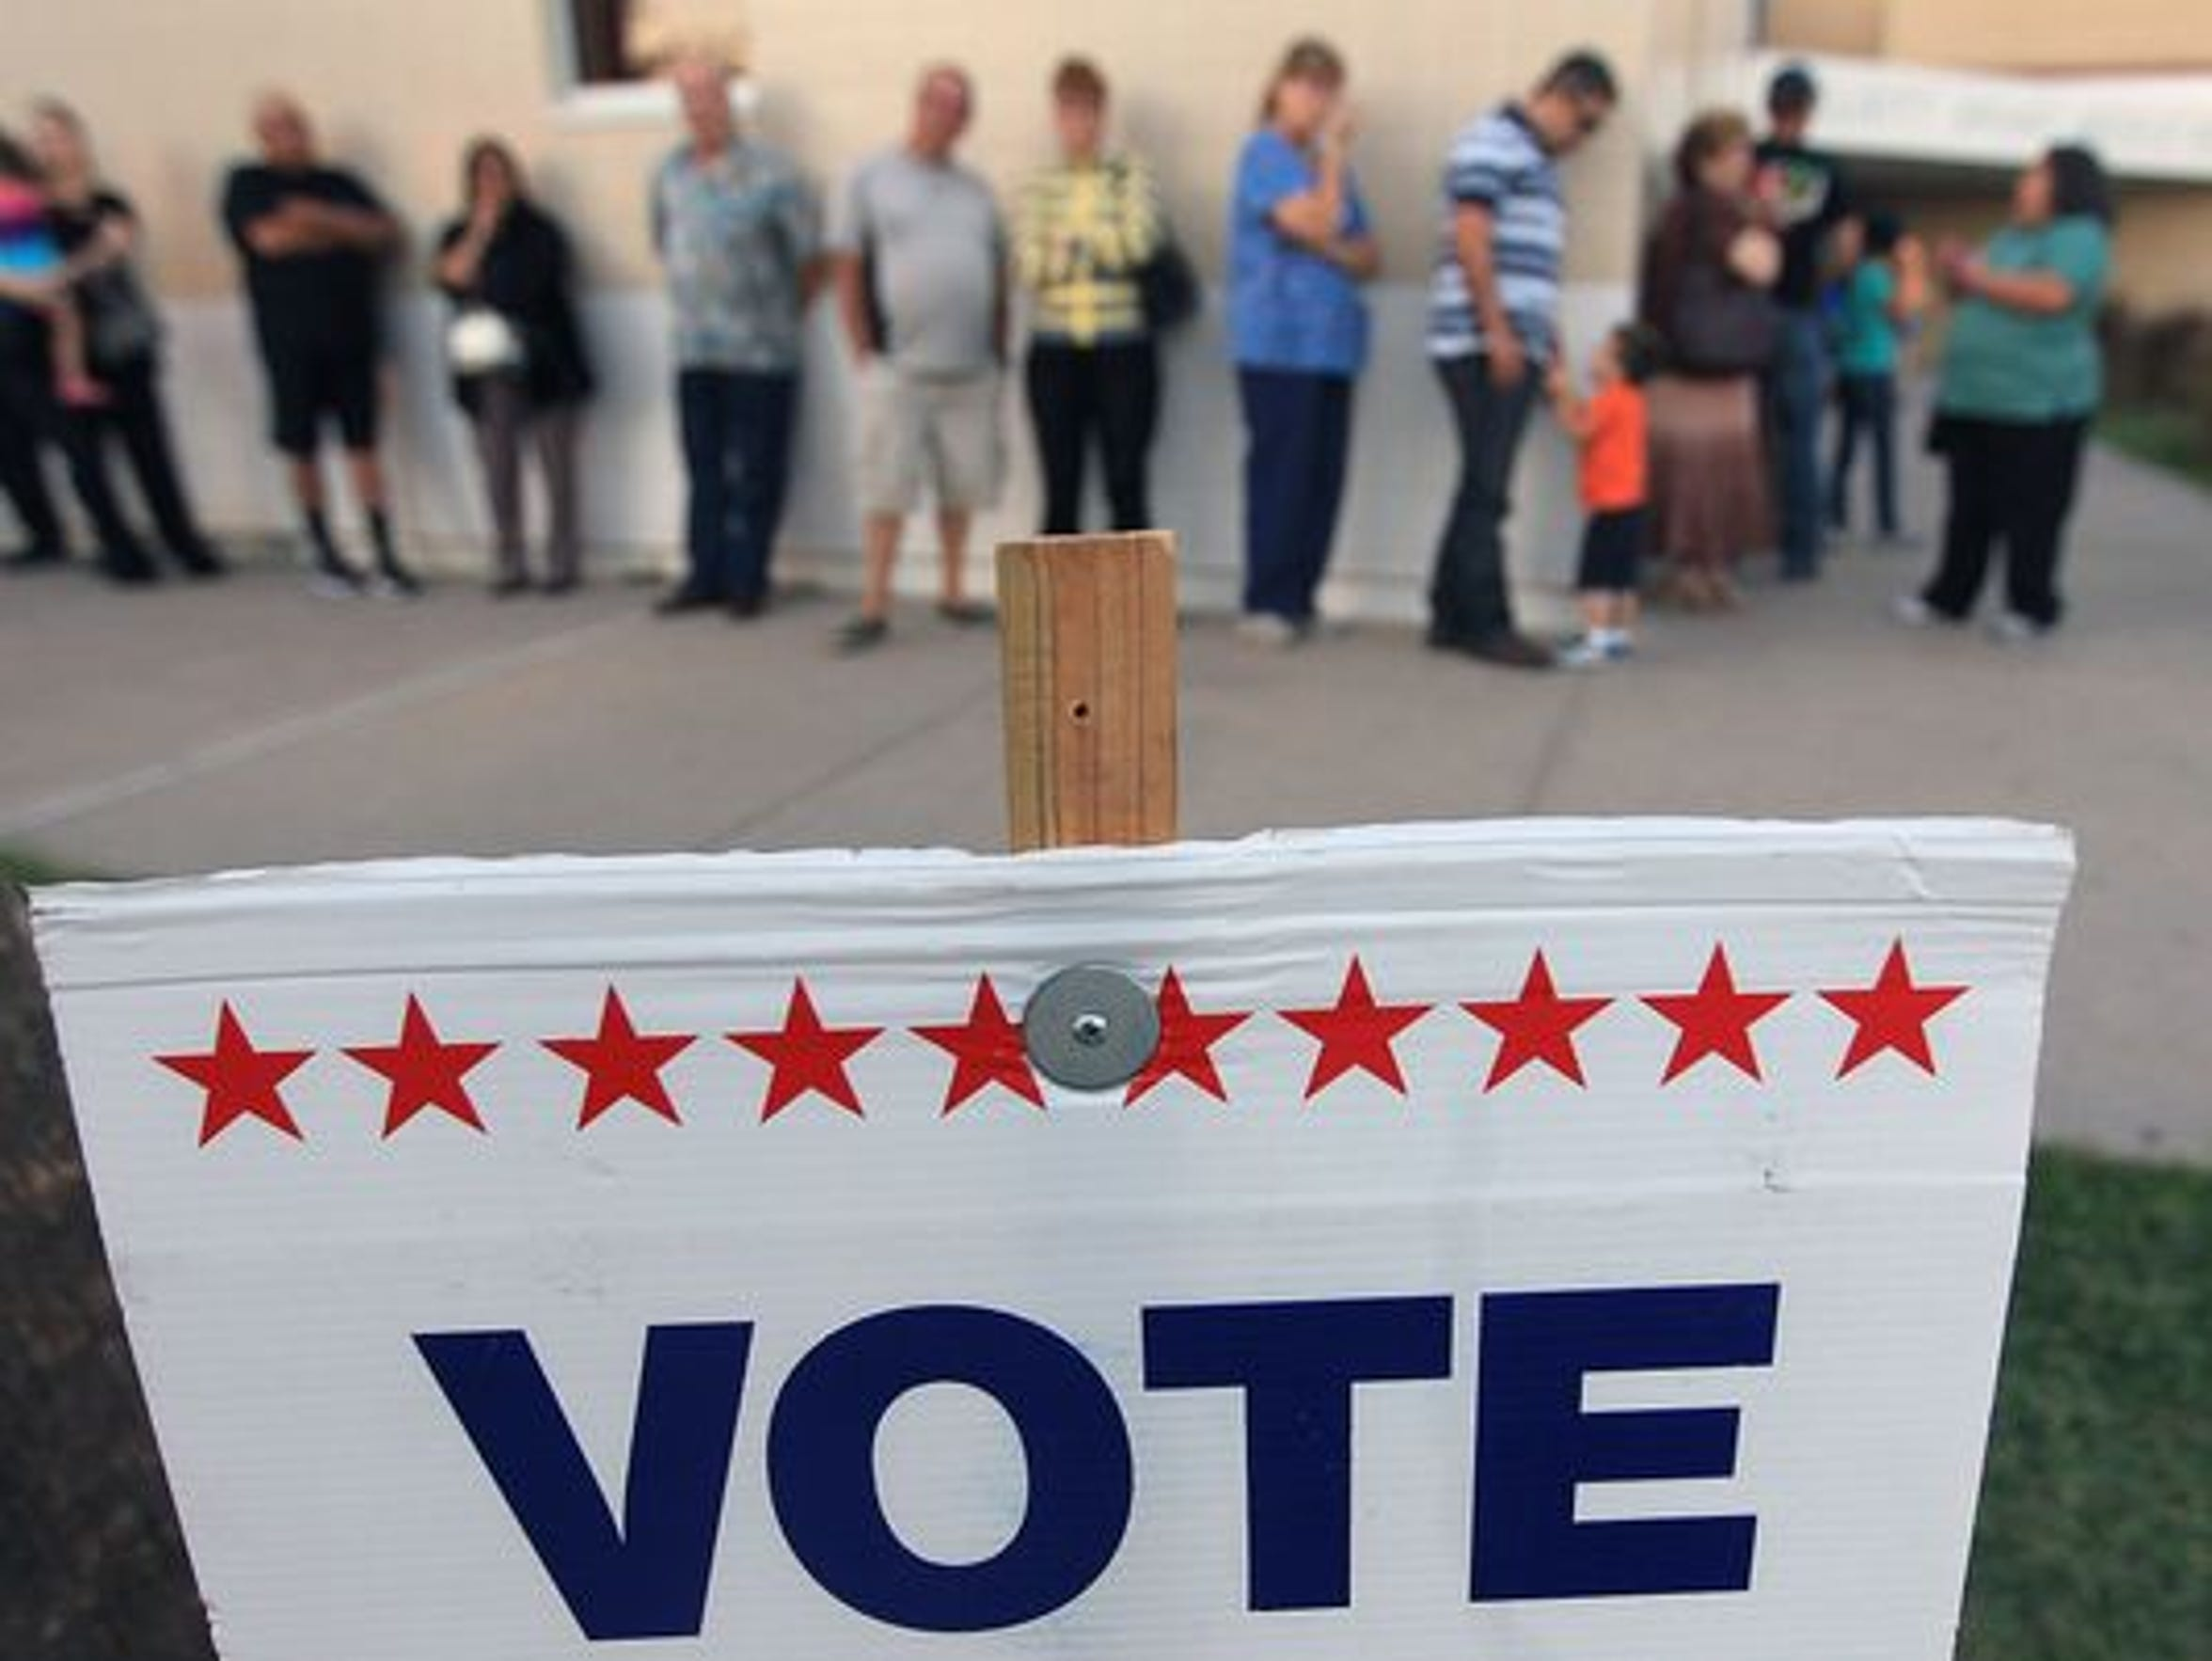 Early voting is from Monday, Oct. 22-Friday, Nov. 2. Election Day is Tuesday, Nov. 6 for the midterm elections.